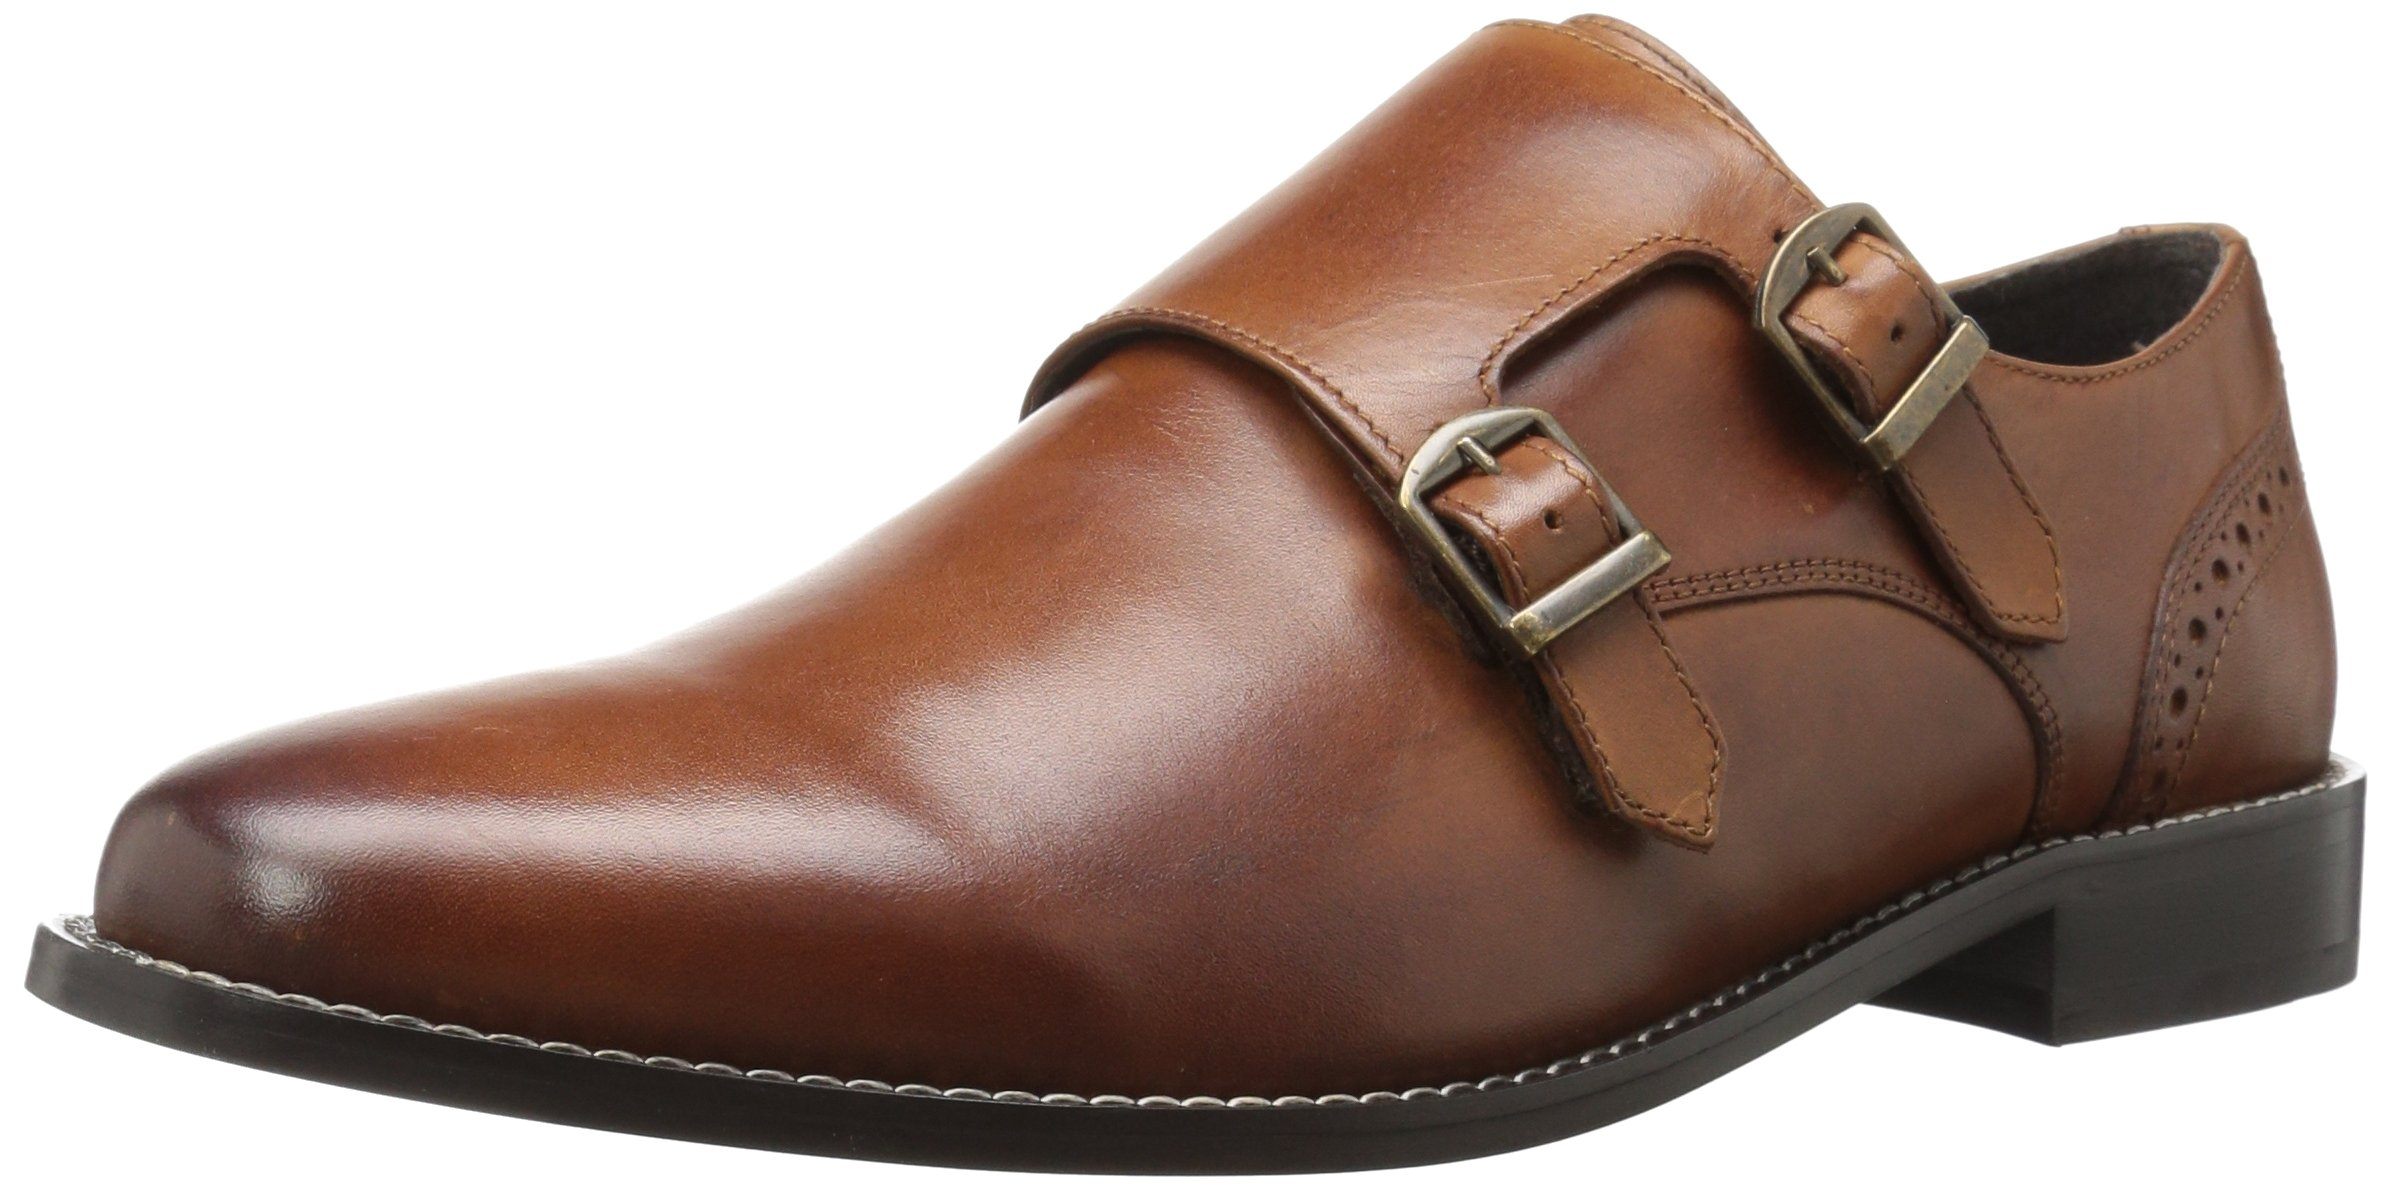 Nunn Bush Men's Norway Plain Toe Double Monk Strap Slip-on, Cognac, 9.5 W US